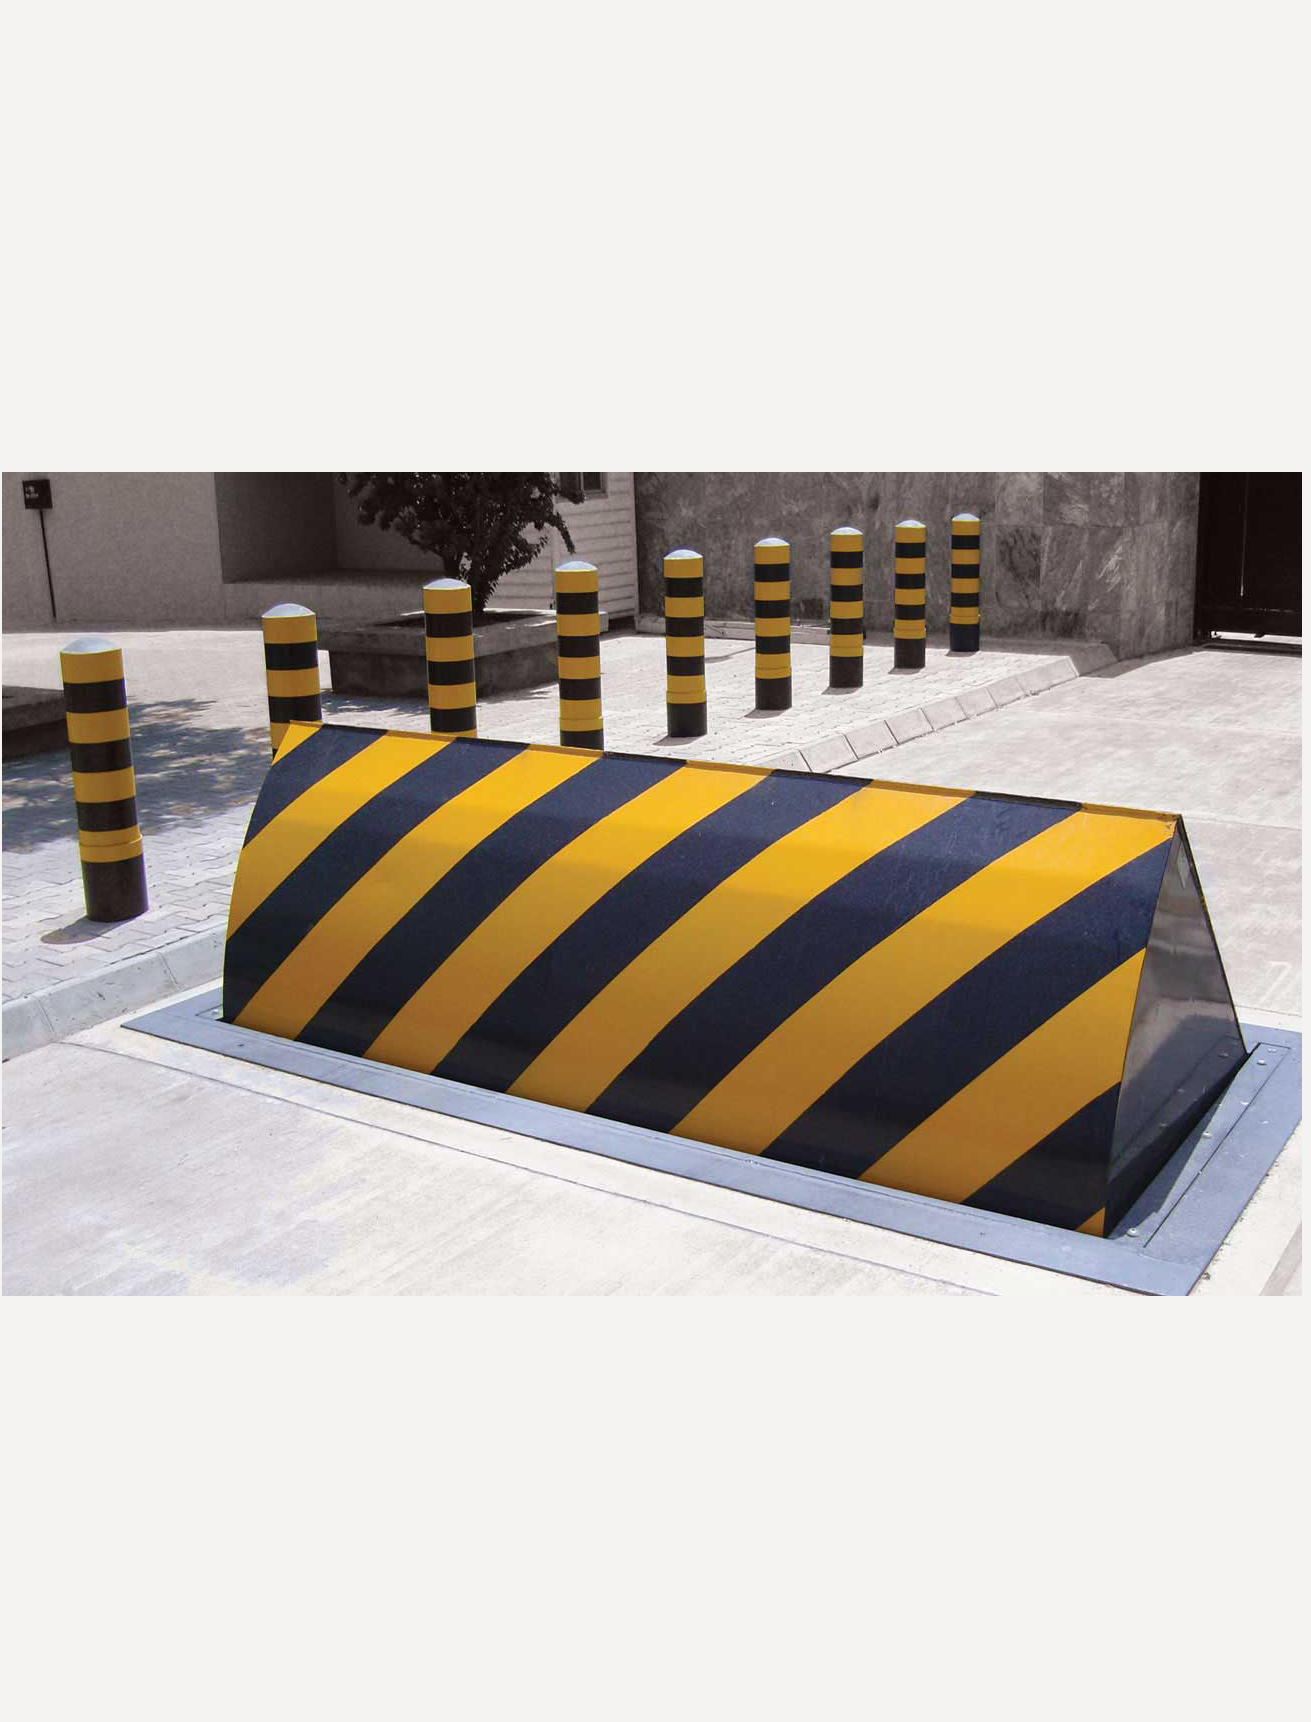 K12 hydraulic ram barrier by crimsafe bollards.